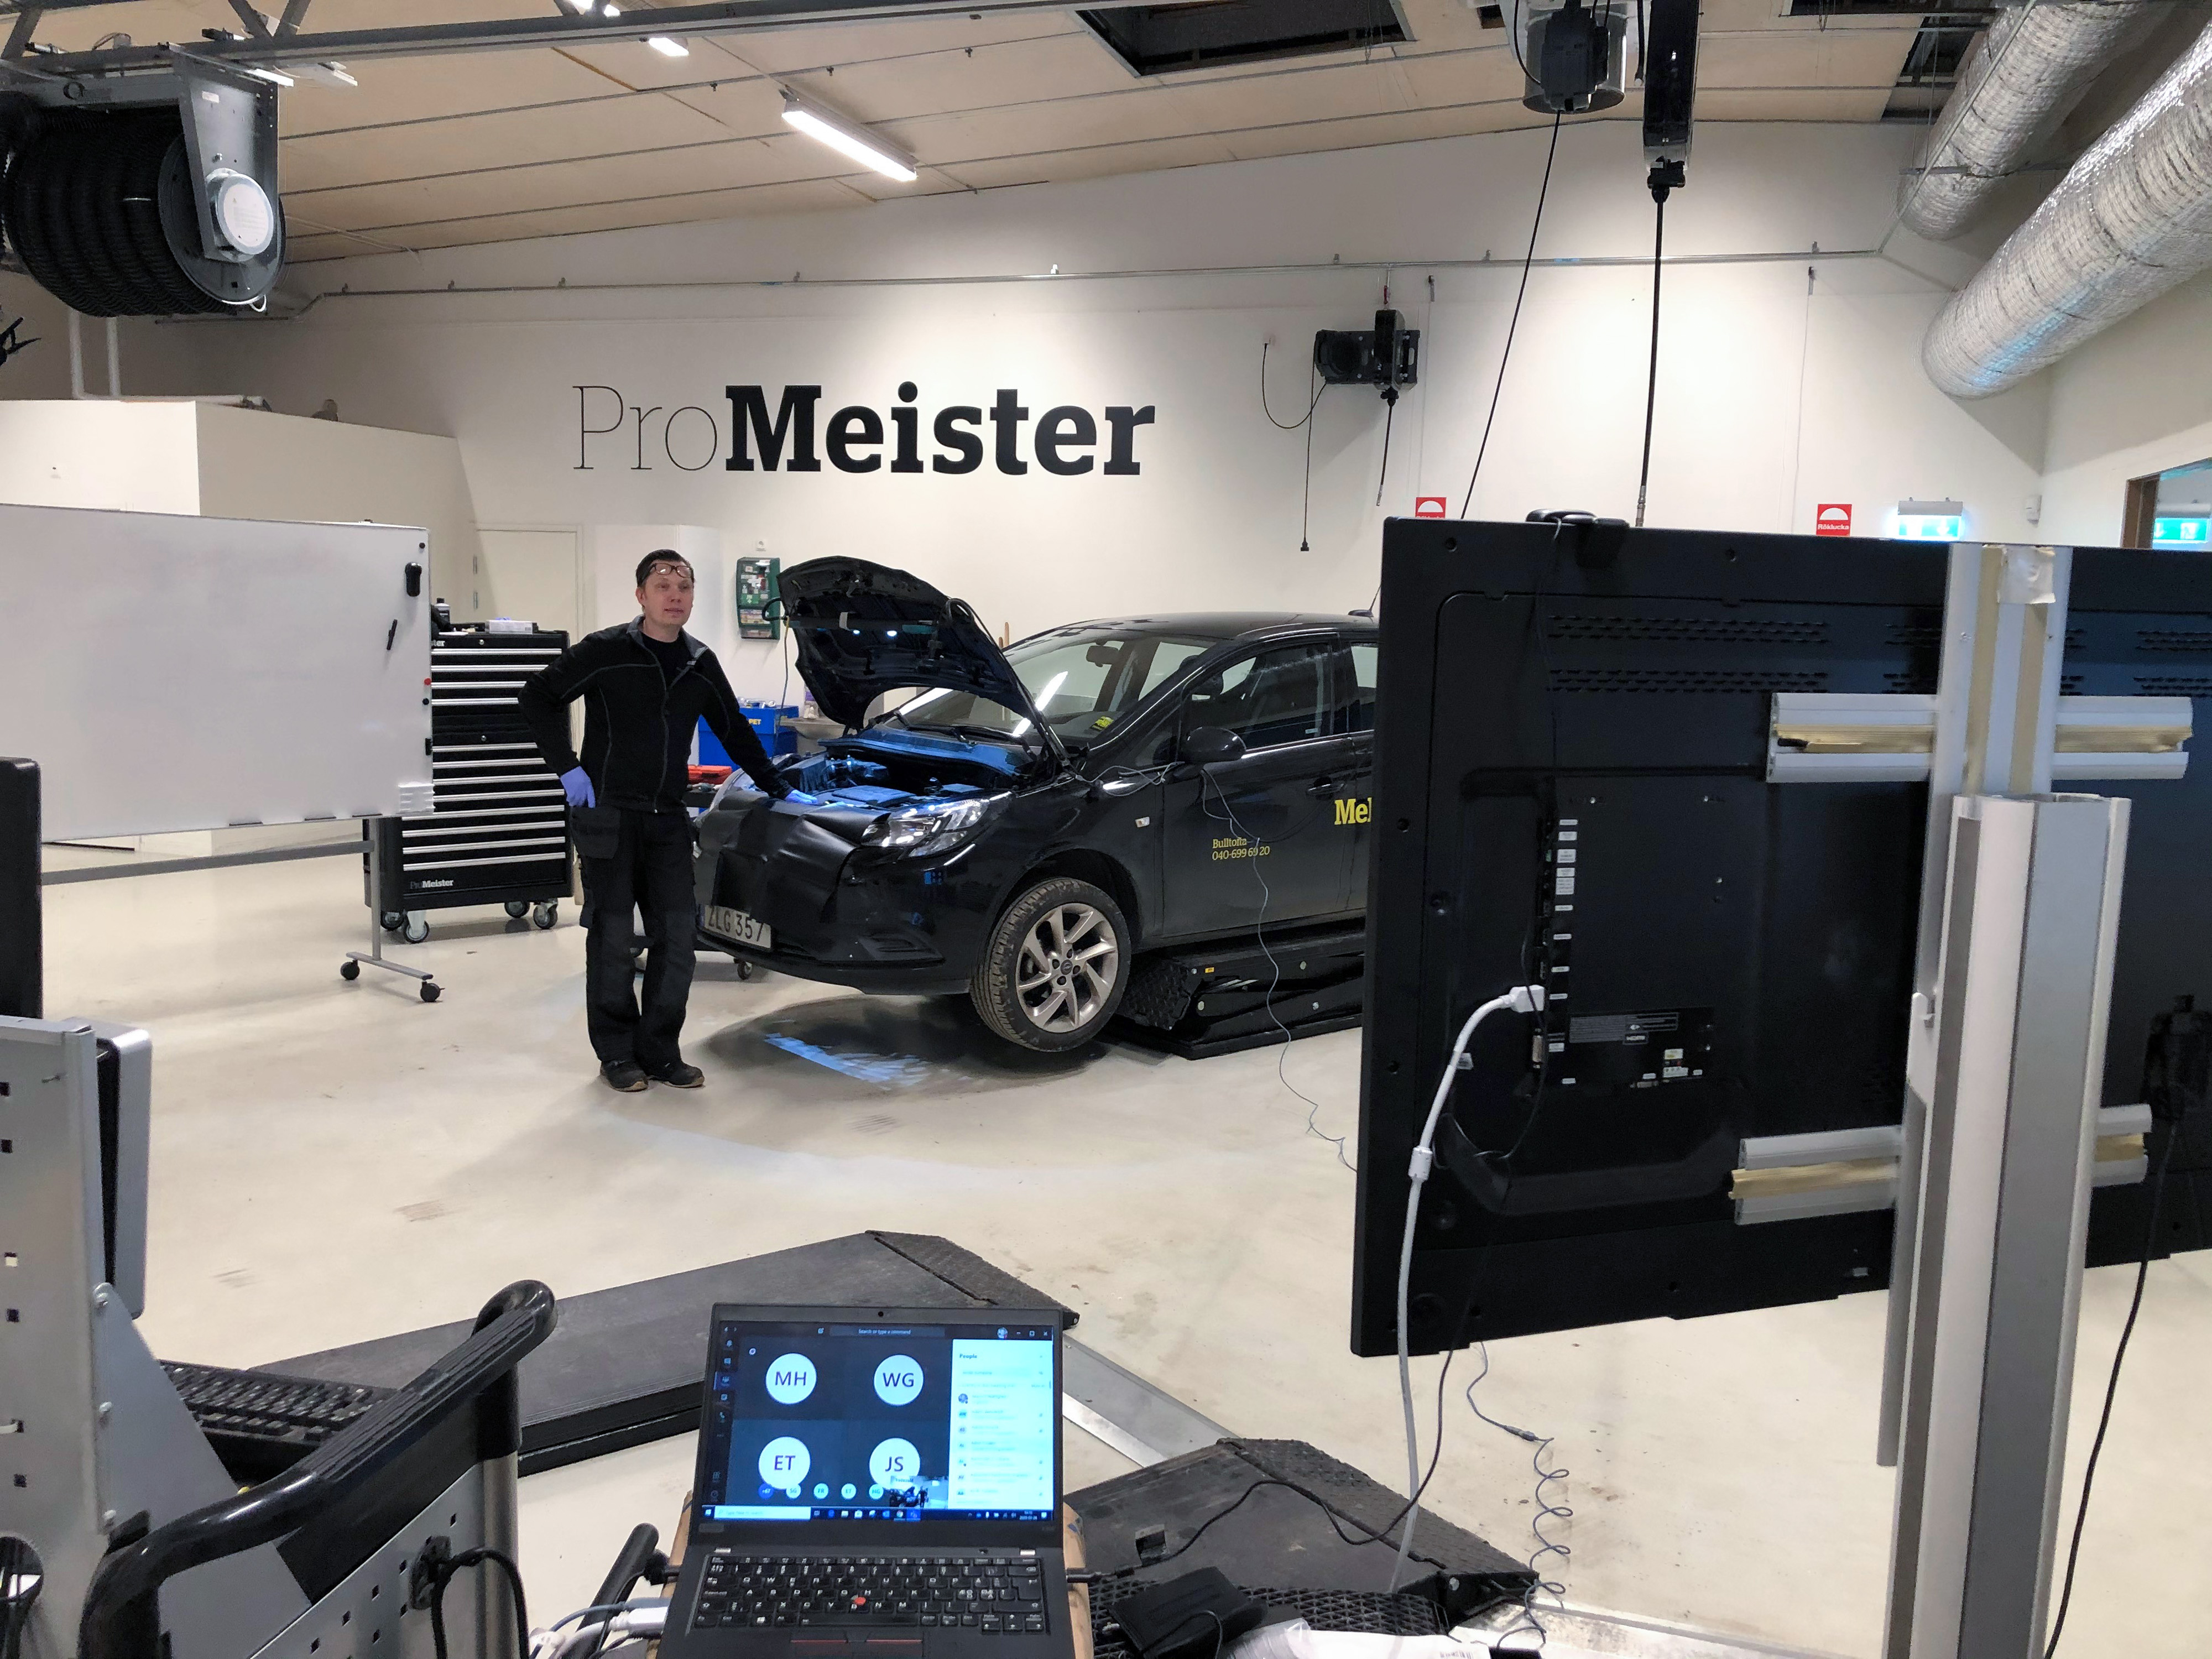 ProMeister_gymnasie_undervisning_video2020-03